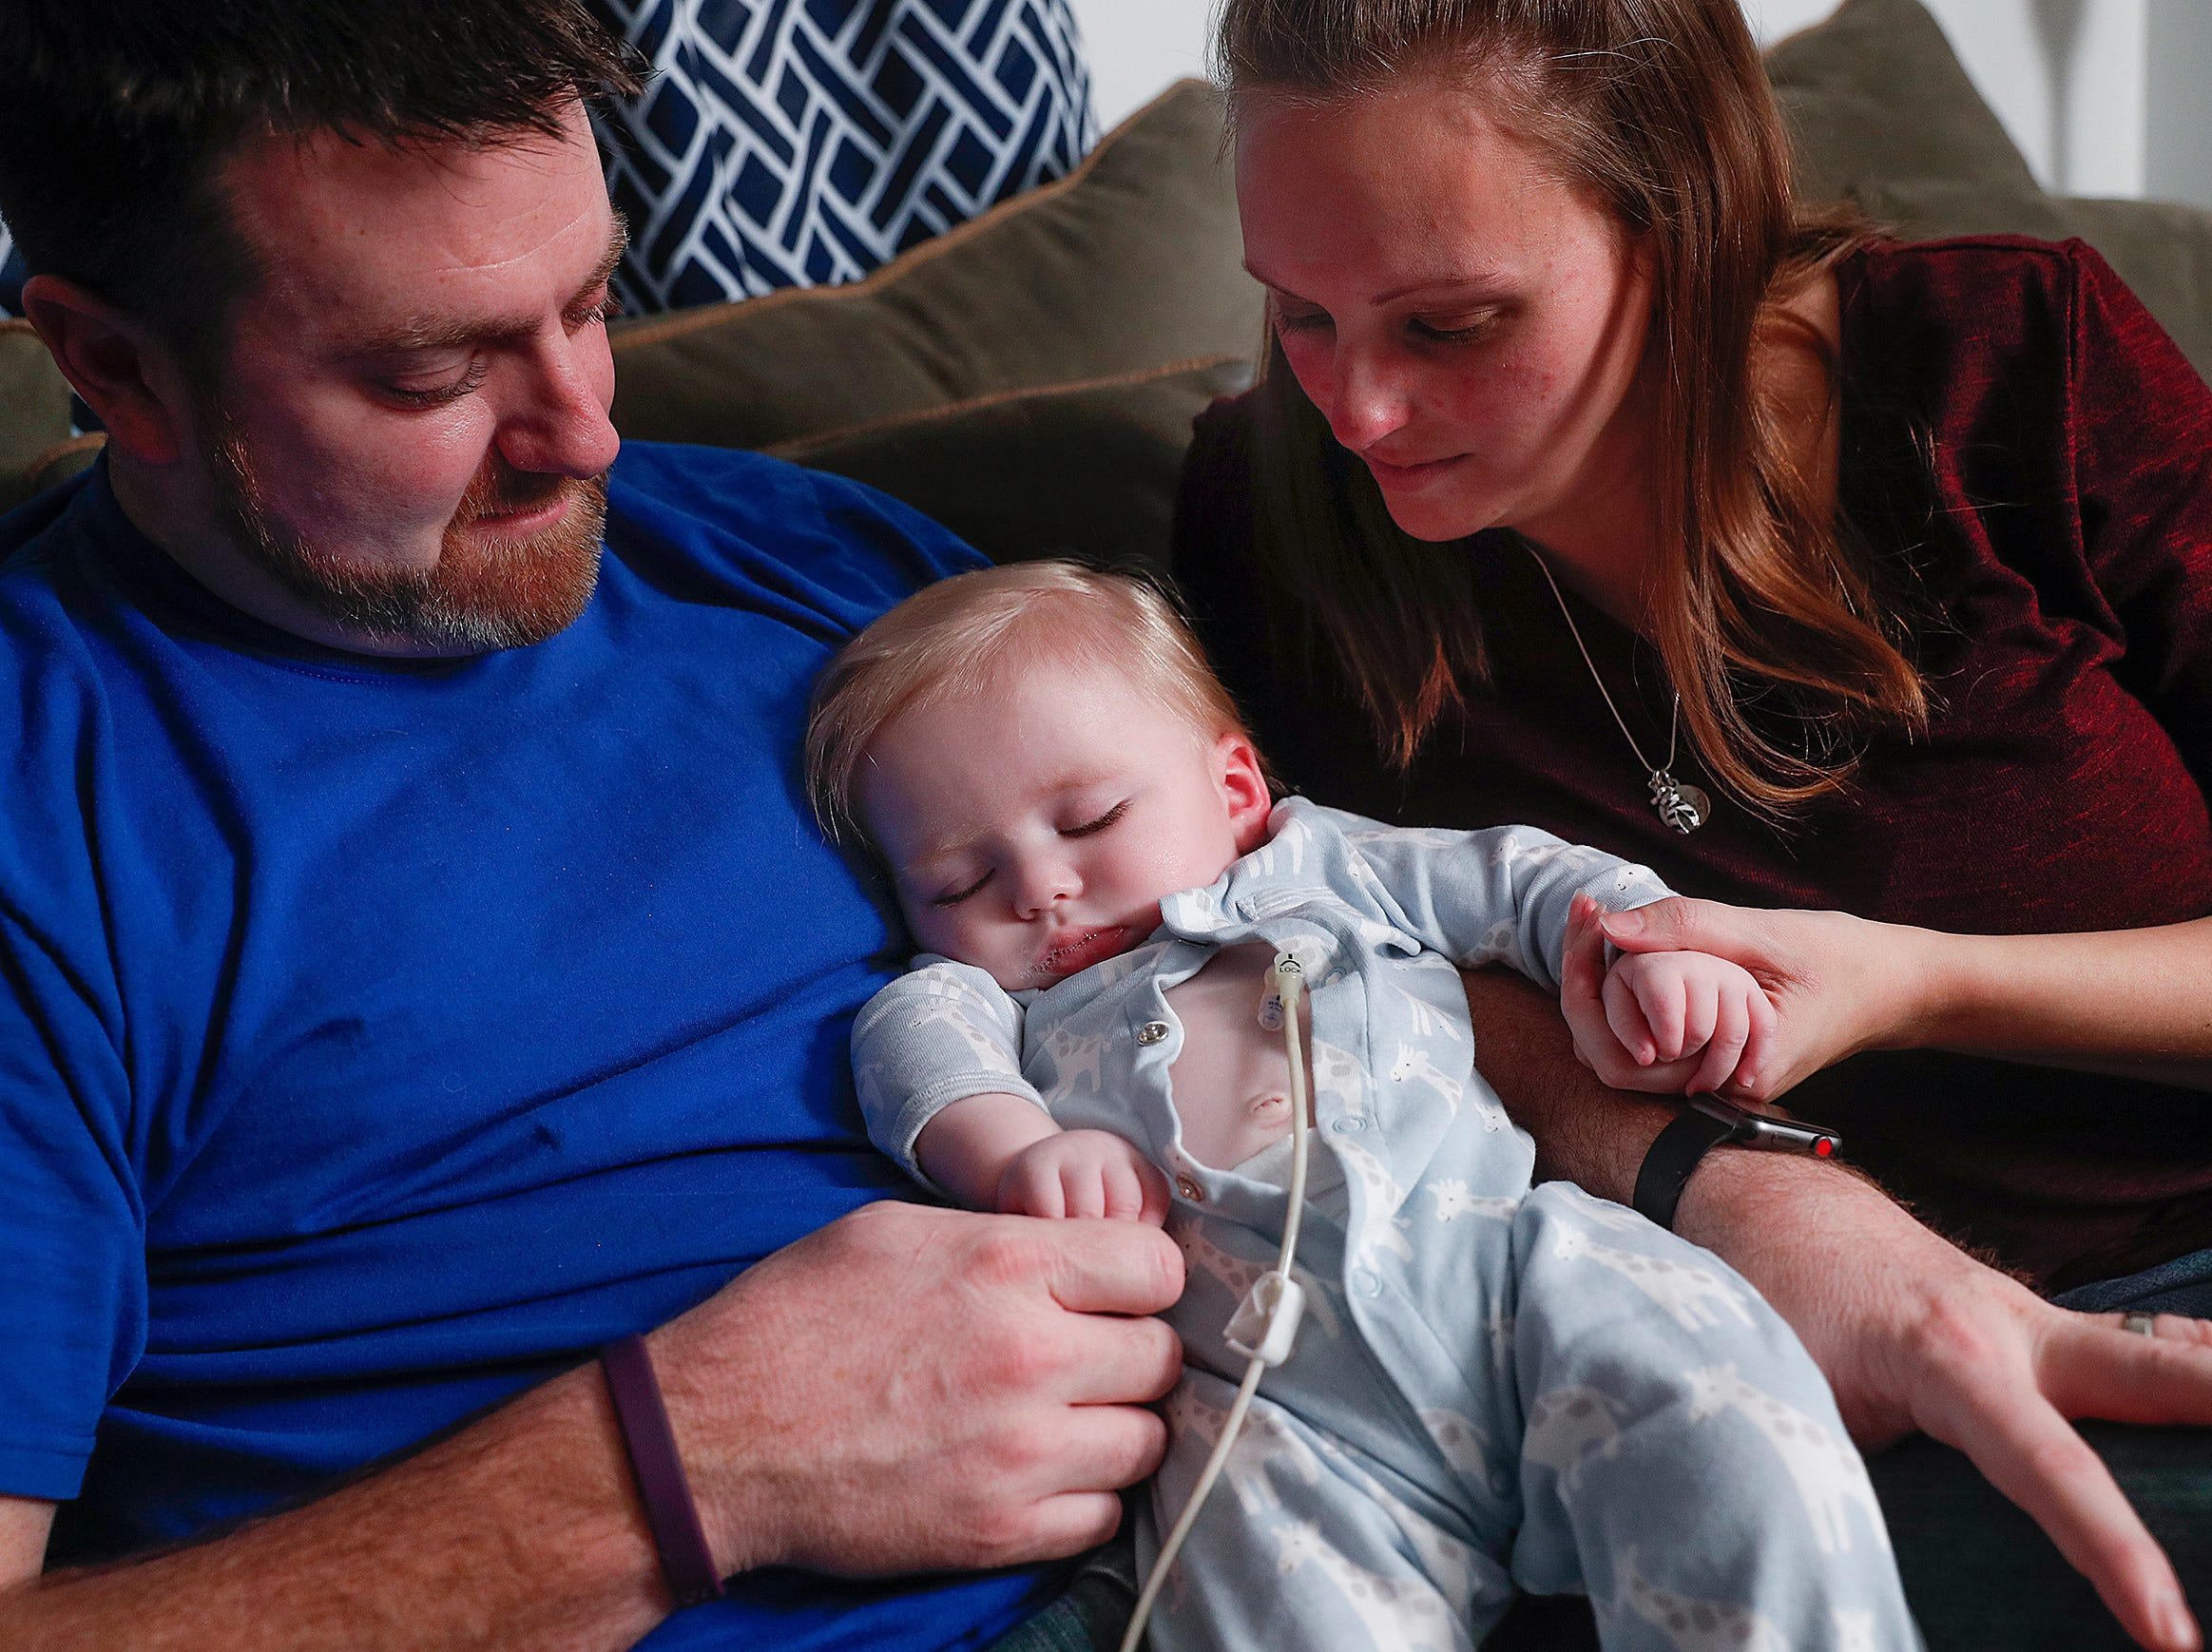 Parents Joel and Andrea Clausen talk about their fight for a new law to add Krabbe disease to the list of disorders on the state's newborn screening panel. Their son Bryce was diagnosed with Krabbe disease after they notice many changes in their toddler.